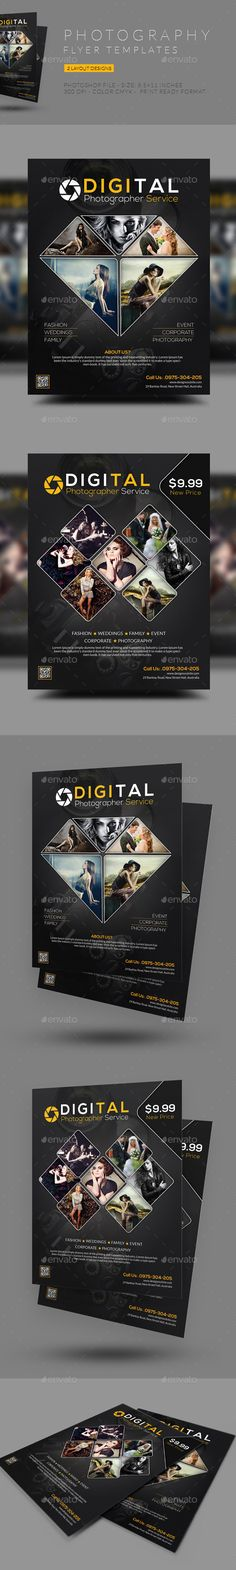 Photography Flyer Template #design Download: http://graphicriver.net/item/photography-flyer/12417434?ref=ksioks